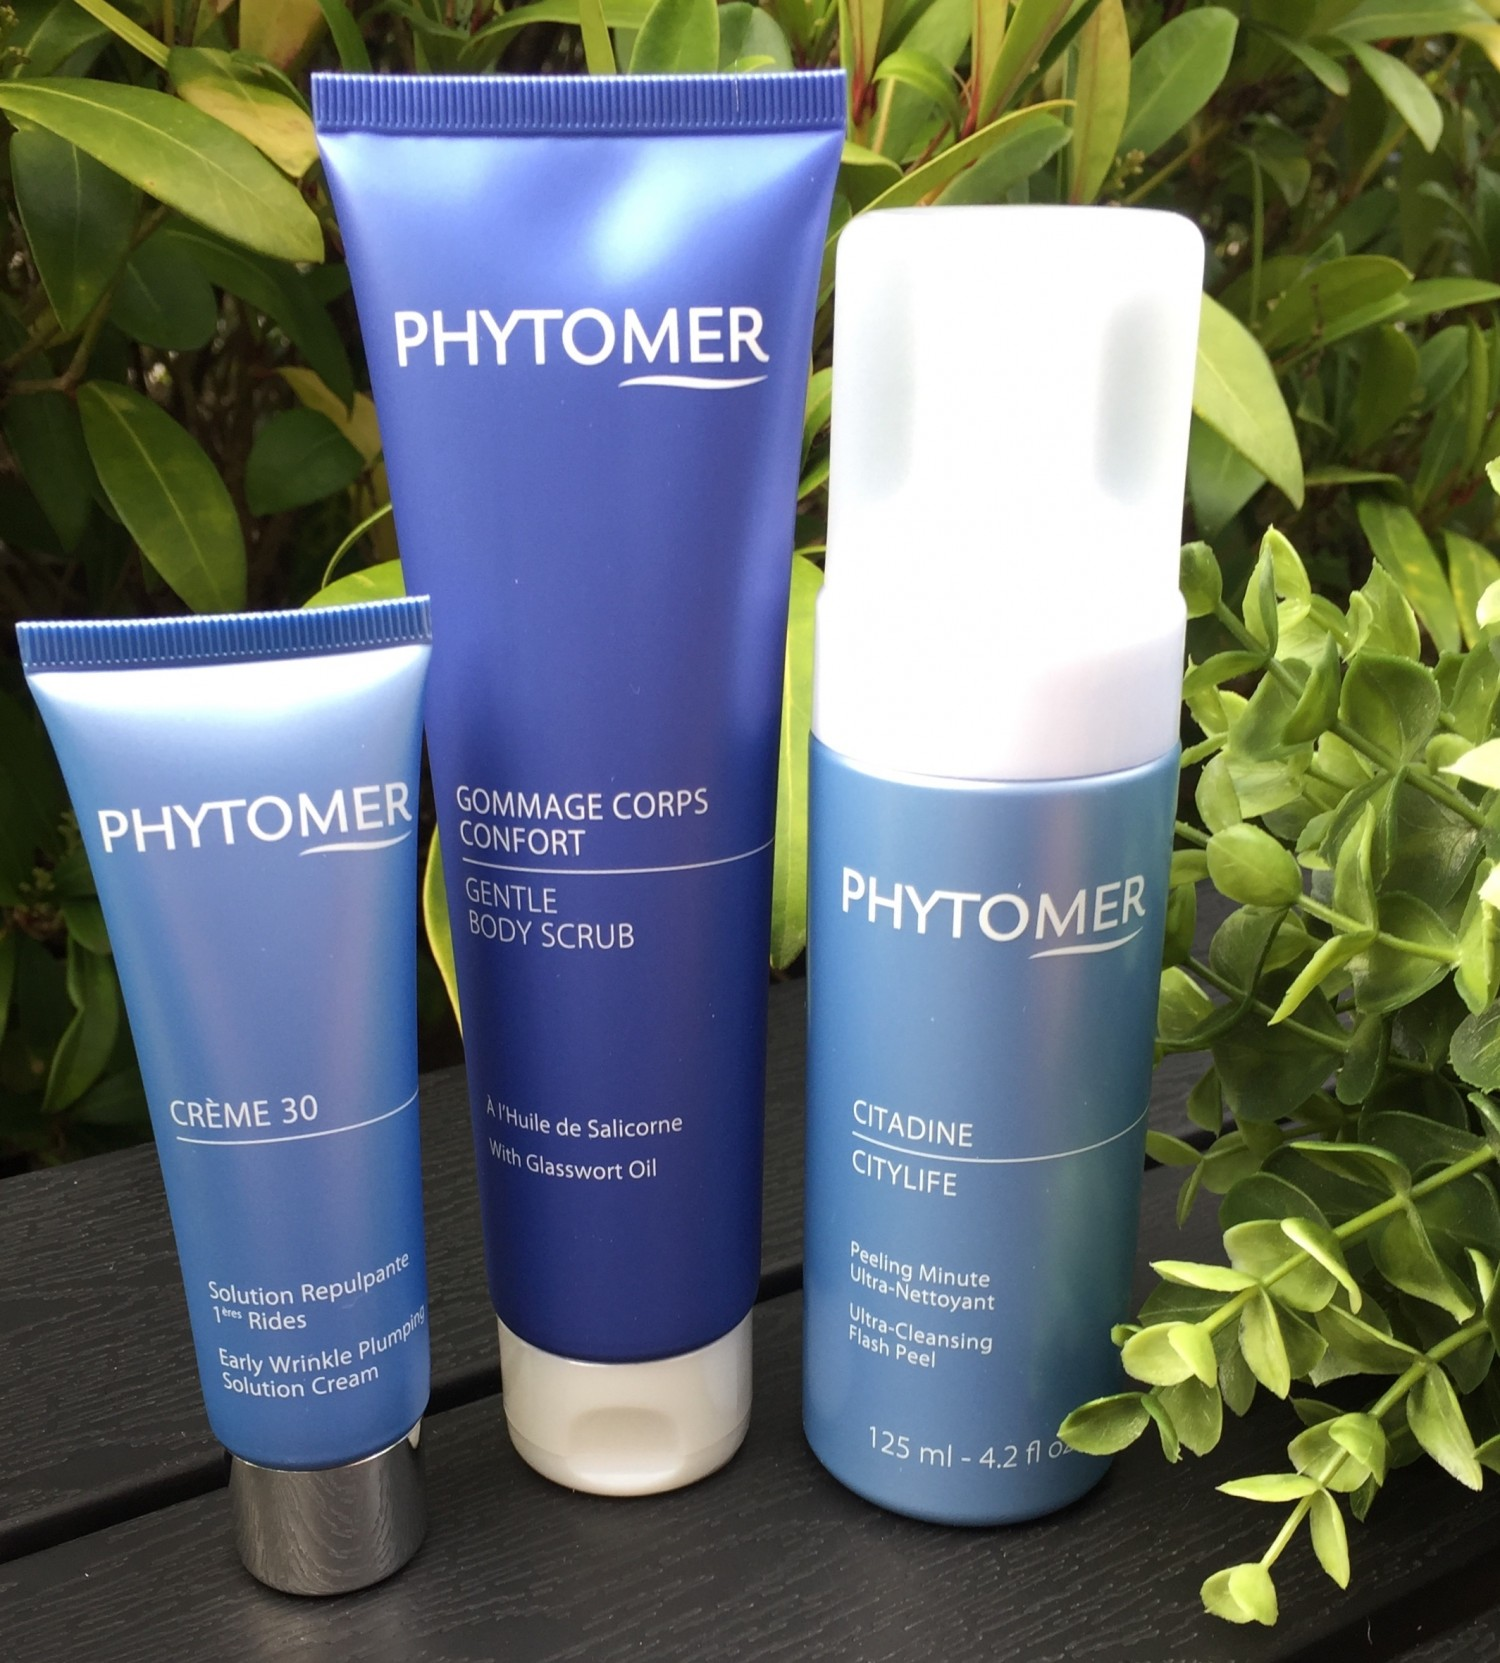 Phytomer, Citylife, Gentle Body scrub, Créme 30, Ultra-cleansing Flash Peel, Peeling,